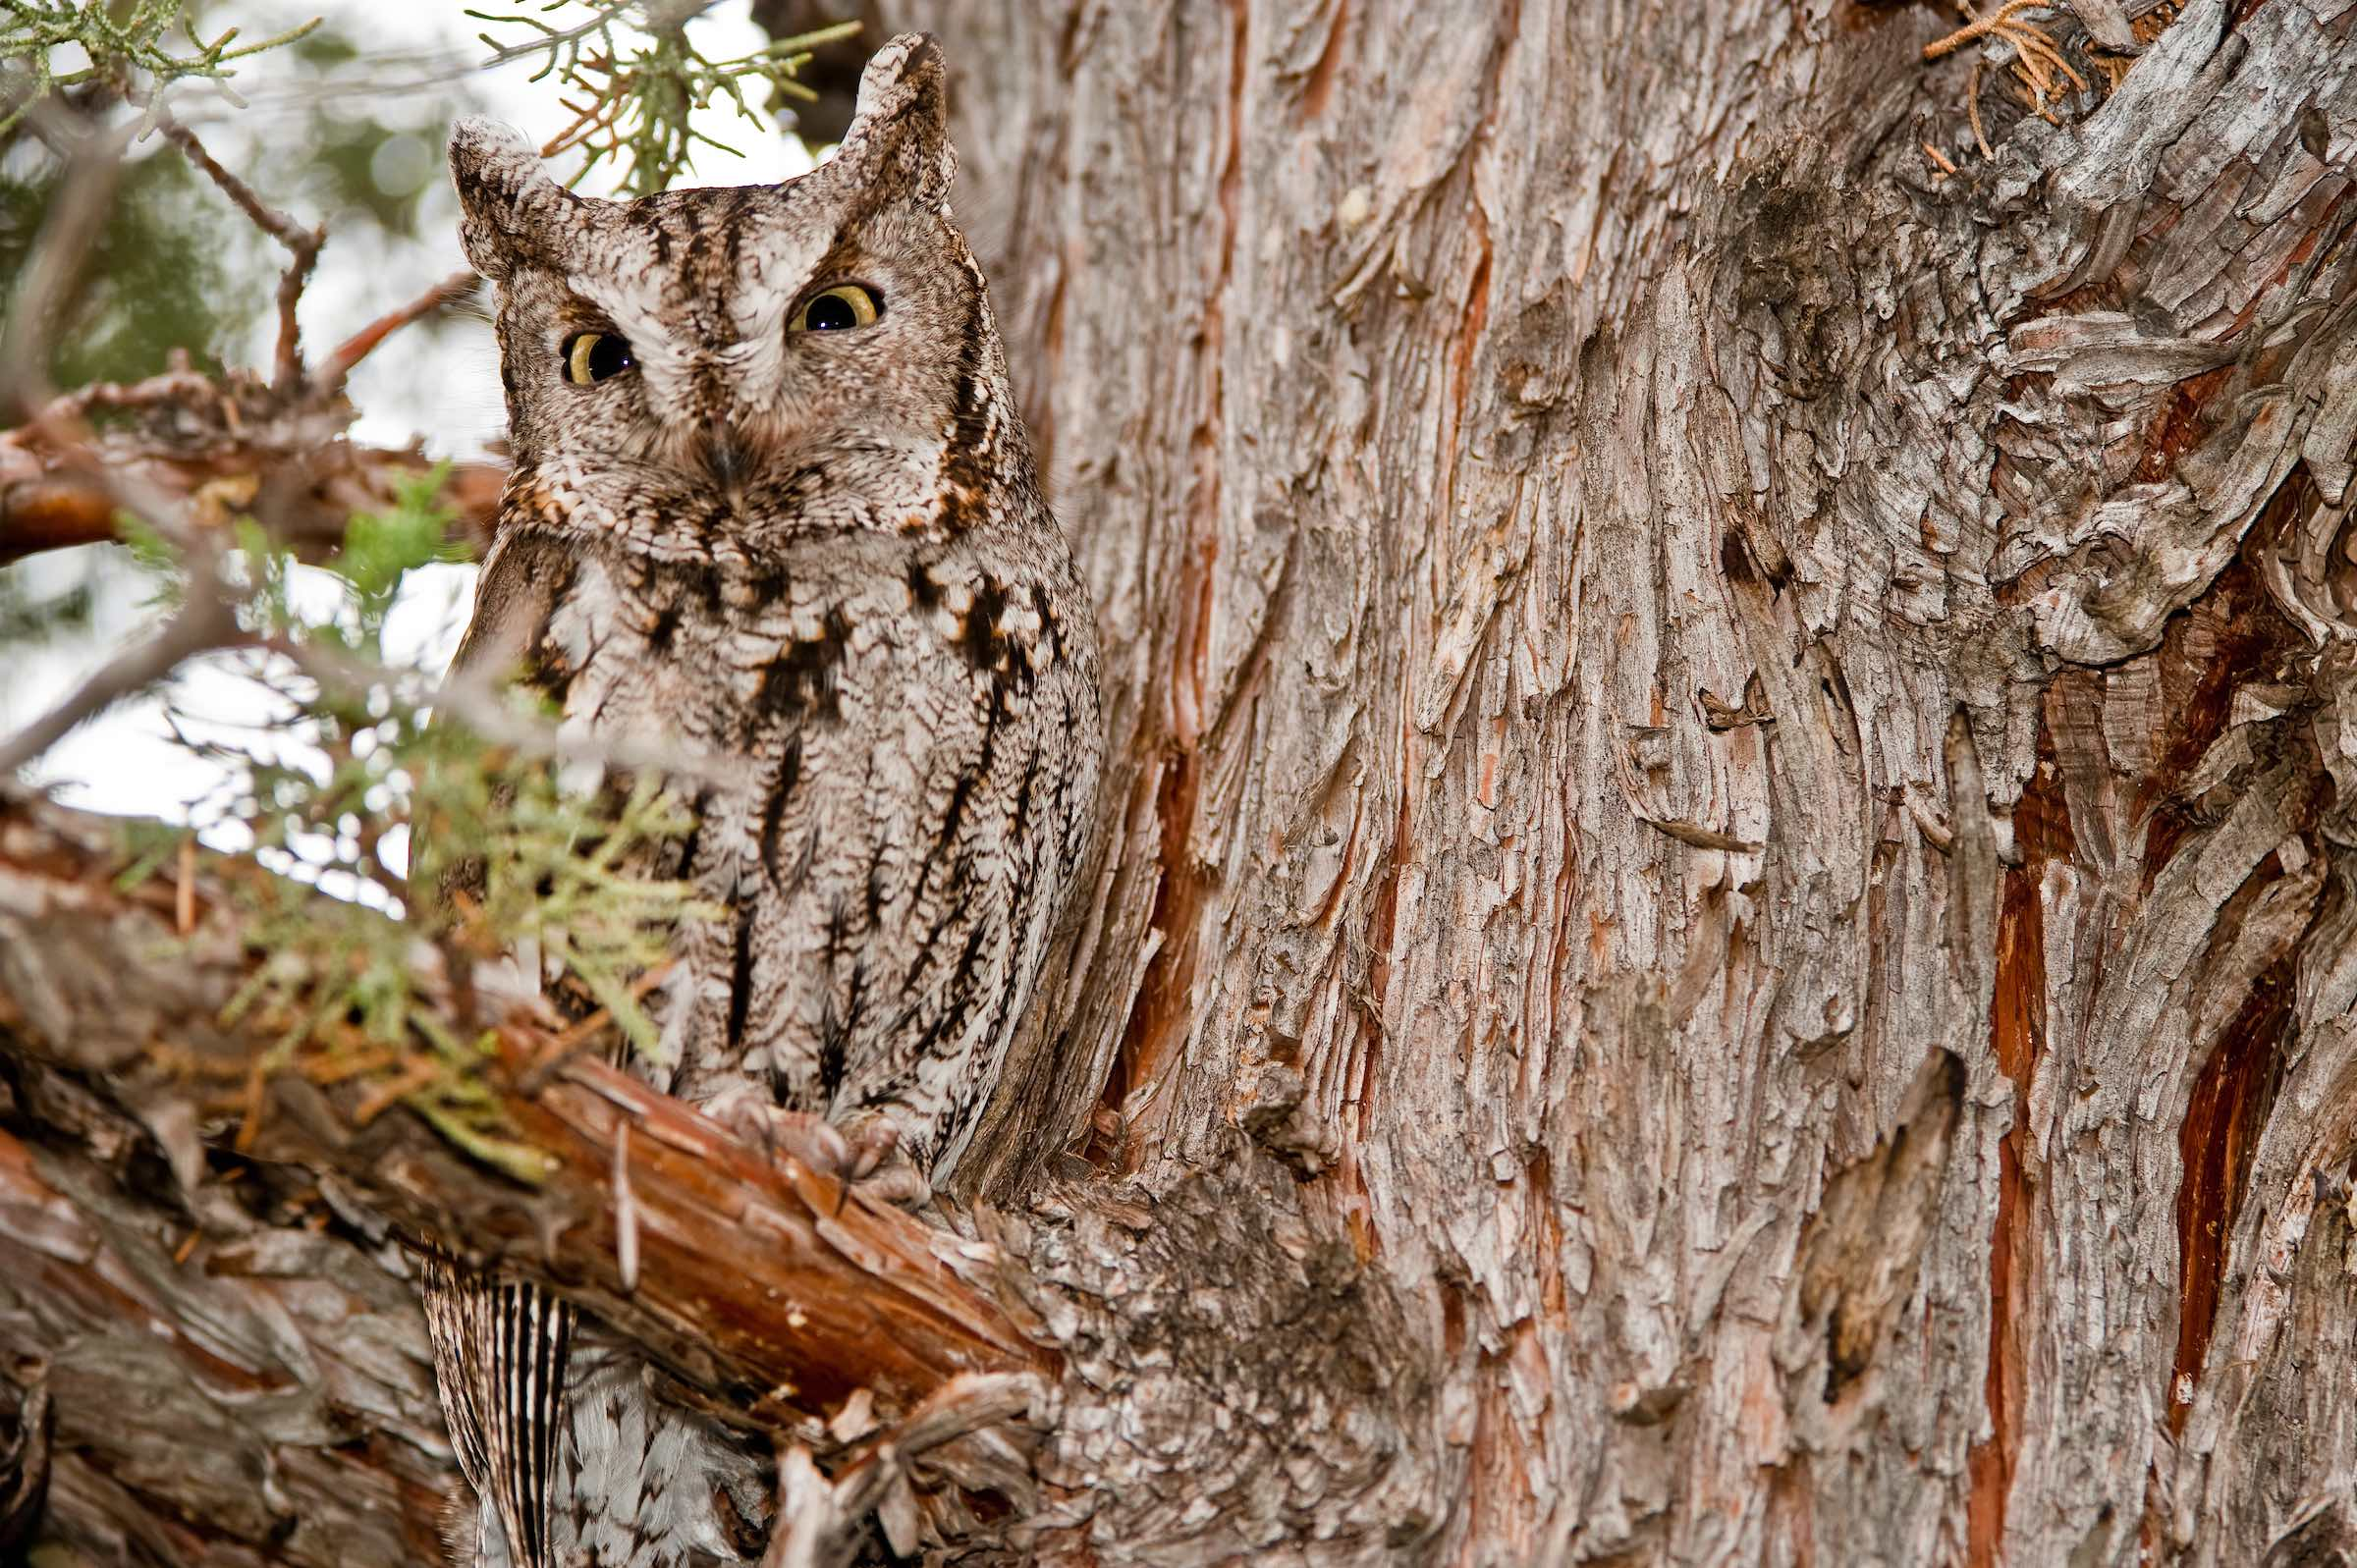 WESTERN SCREECH OWL. © GIVEN PHOTOGRAPHY 2018